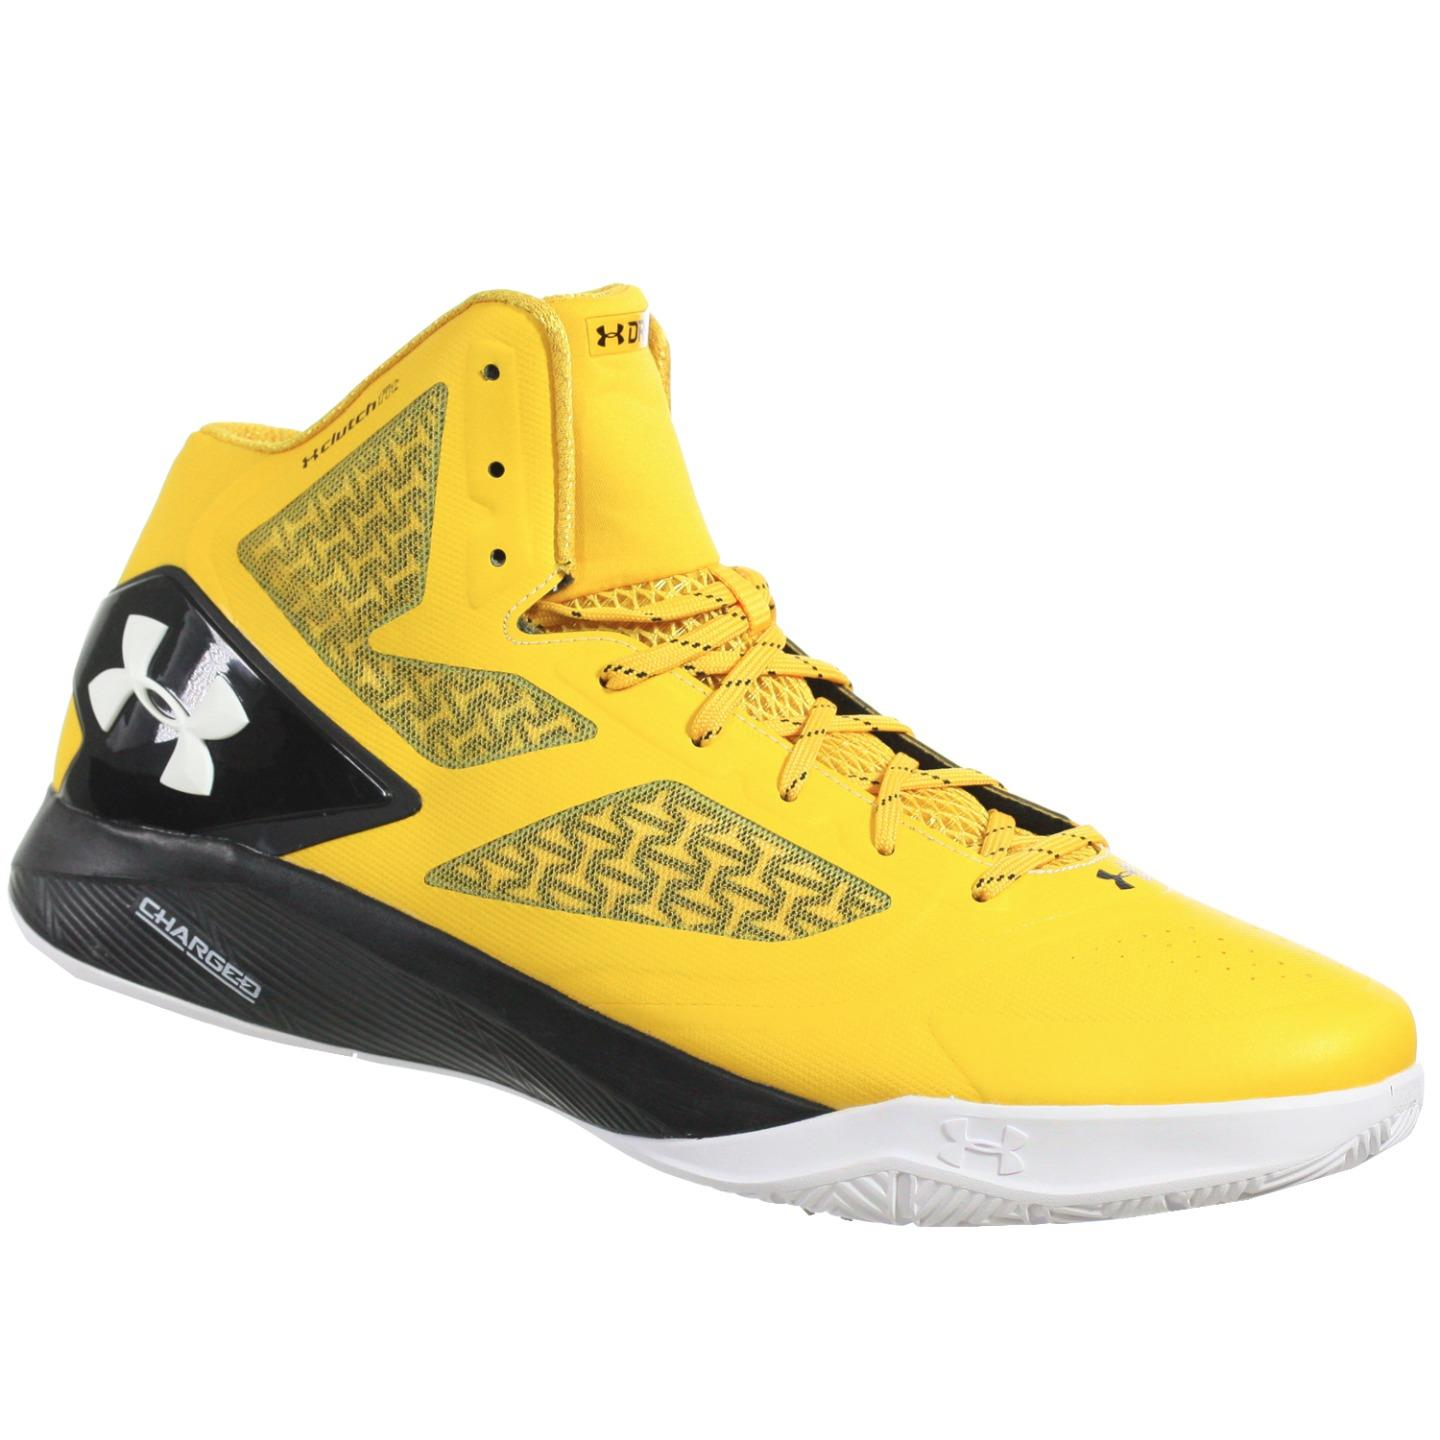 UNDER ARMOUR MEN'S BASKETBALL SHOES TB CLUTCHFIT DRIVE 2 GOLD BLACK WHITE 17 M